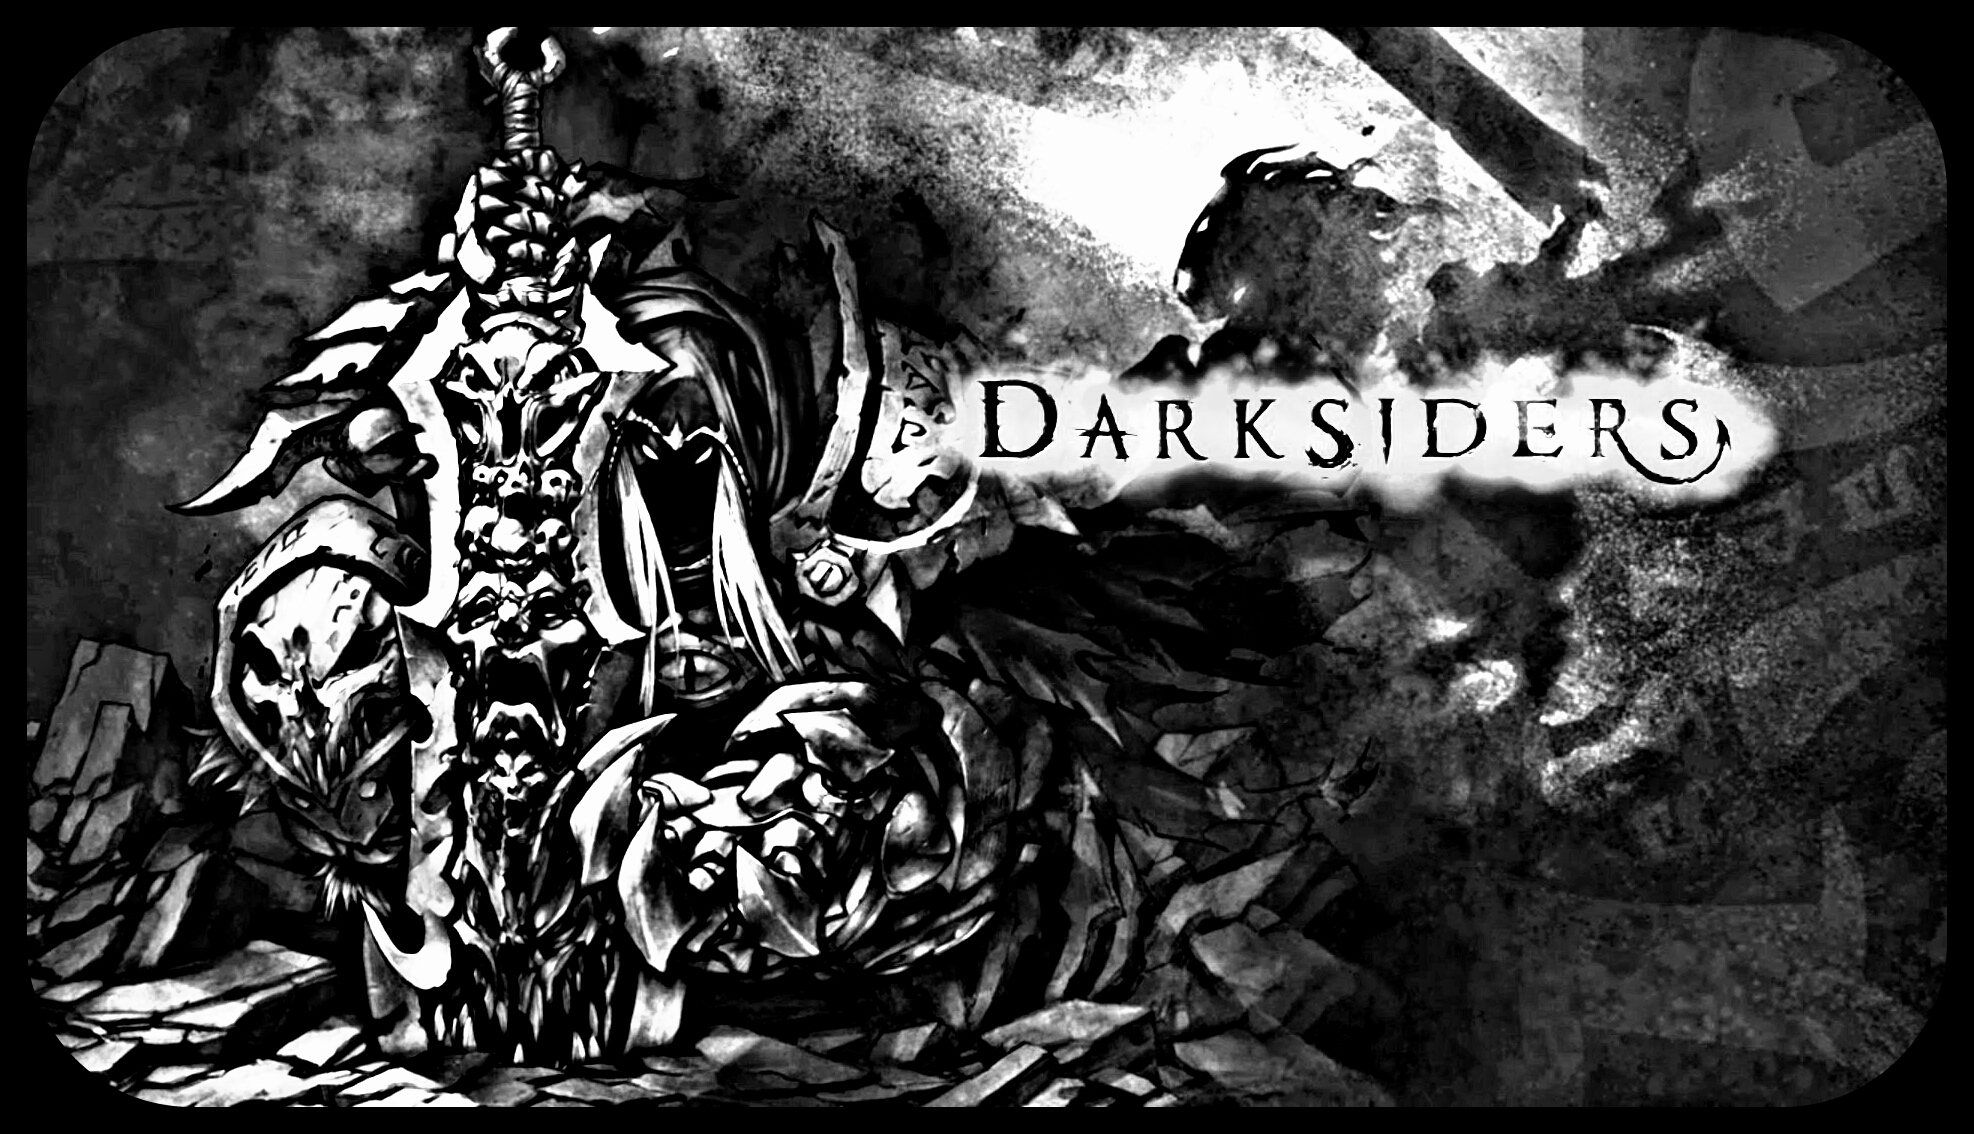 Darksiders War Wallpaper By: Darksiders Cover War Black And White By Schloemixi On